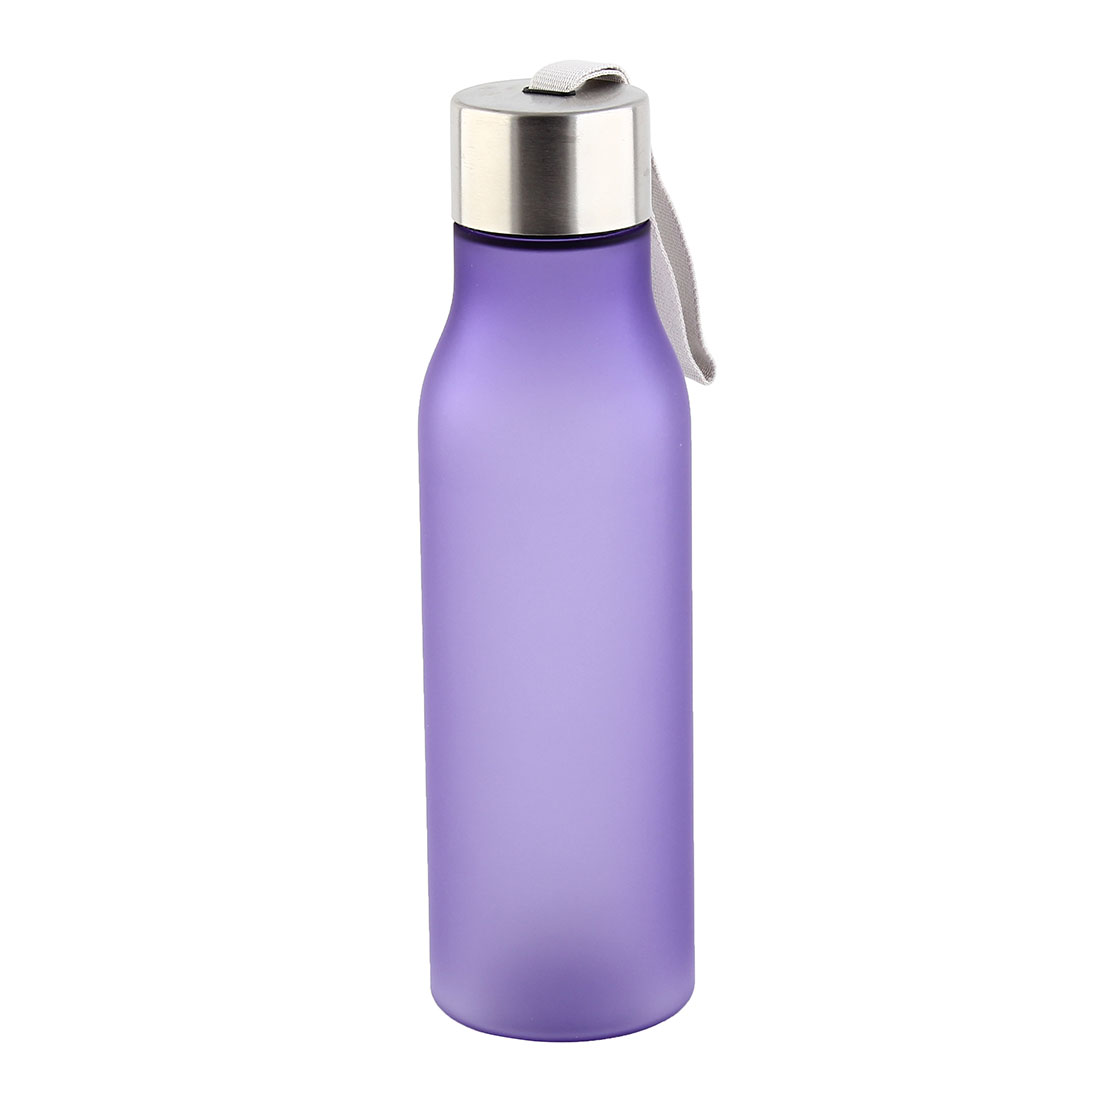 Outdoor Plastic Frosted Water Bottle Portable Fruit Juice Mug Running Cycling Cup Camping Hiking Kettle Purple 570ml